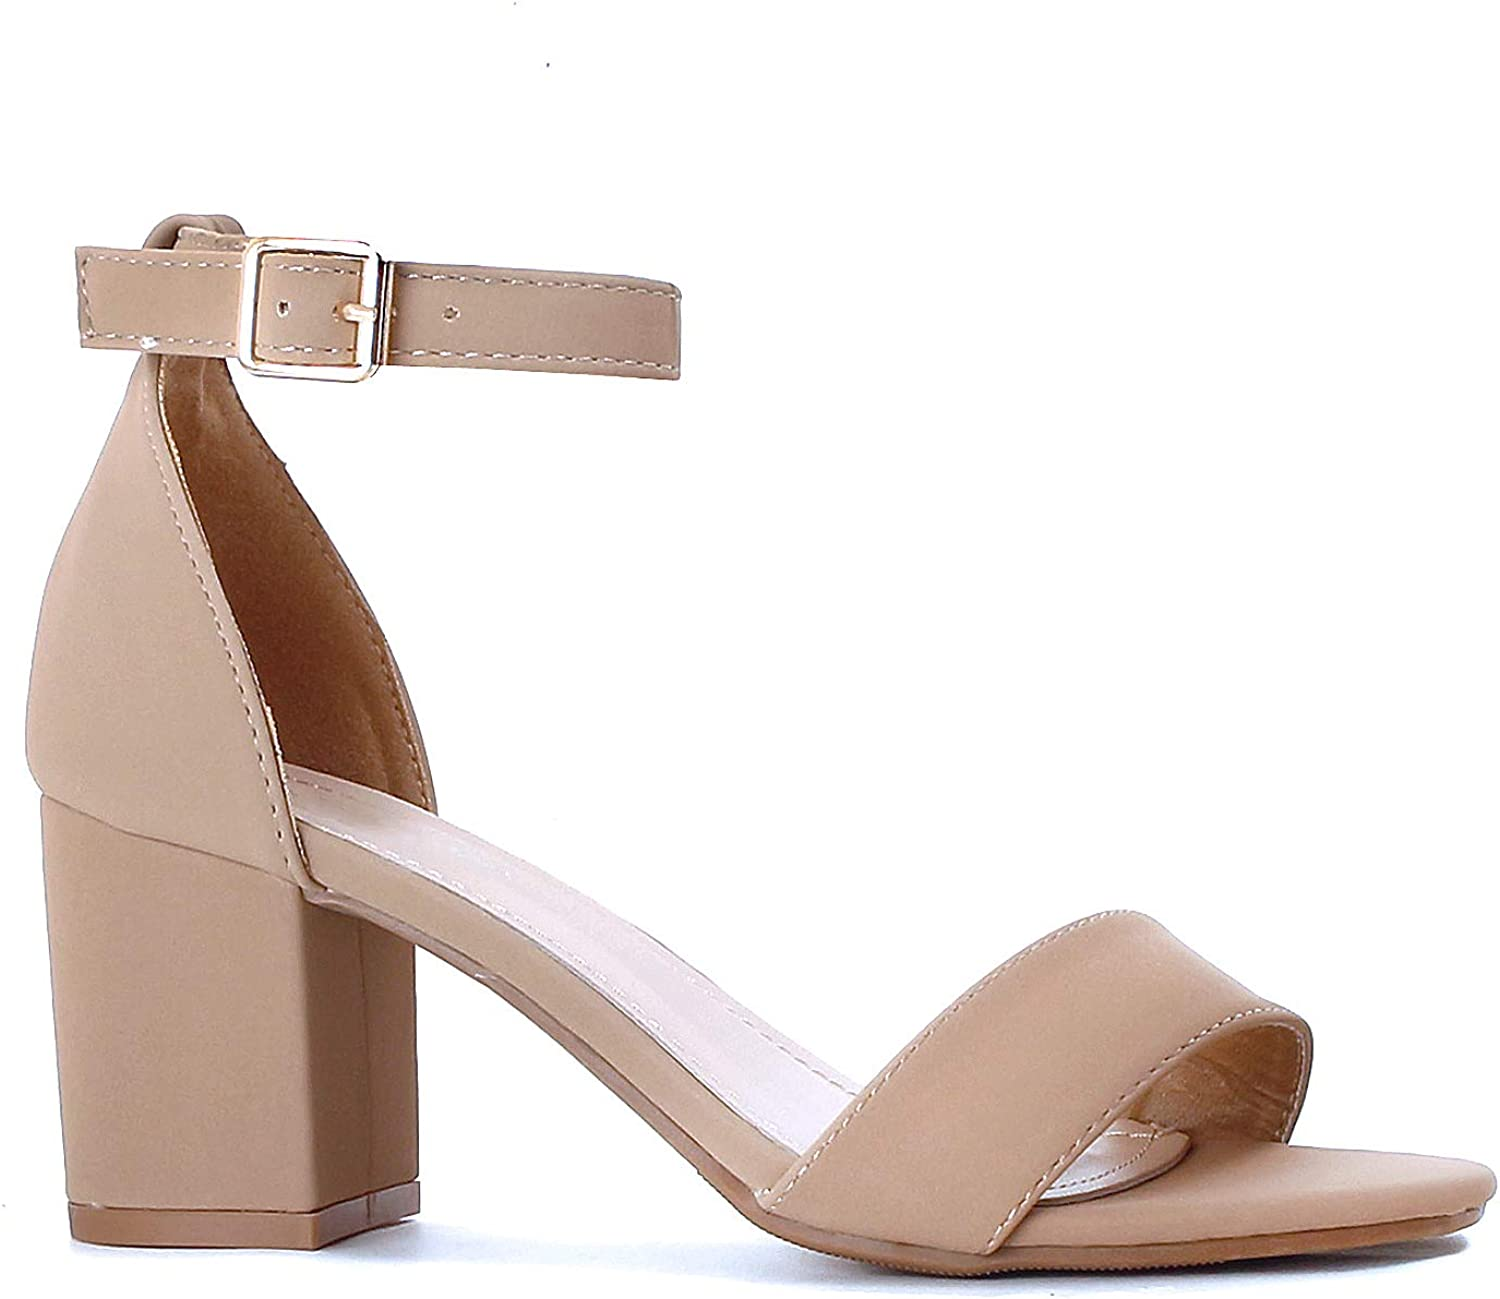 Guilty Heart Womens Light Weight Comfortable Chunky Block Ankle Strap Open Toe Low Heeled Sandals